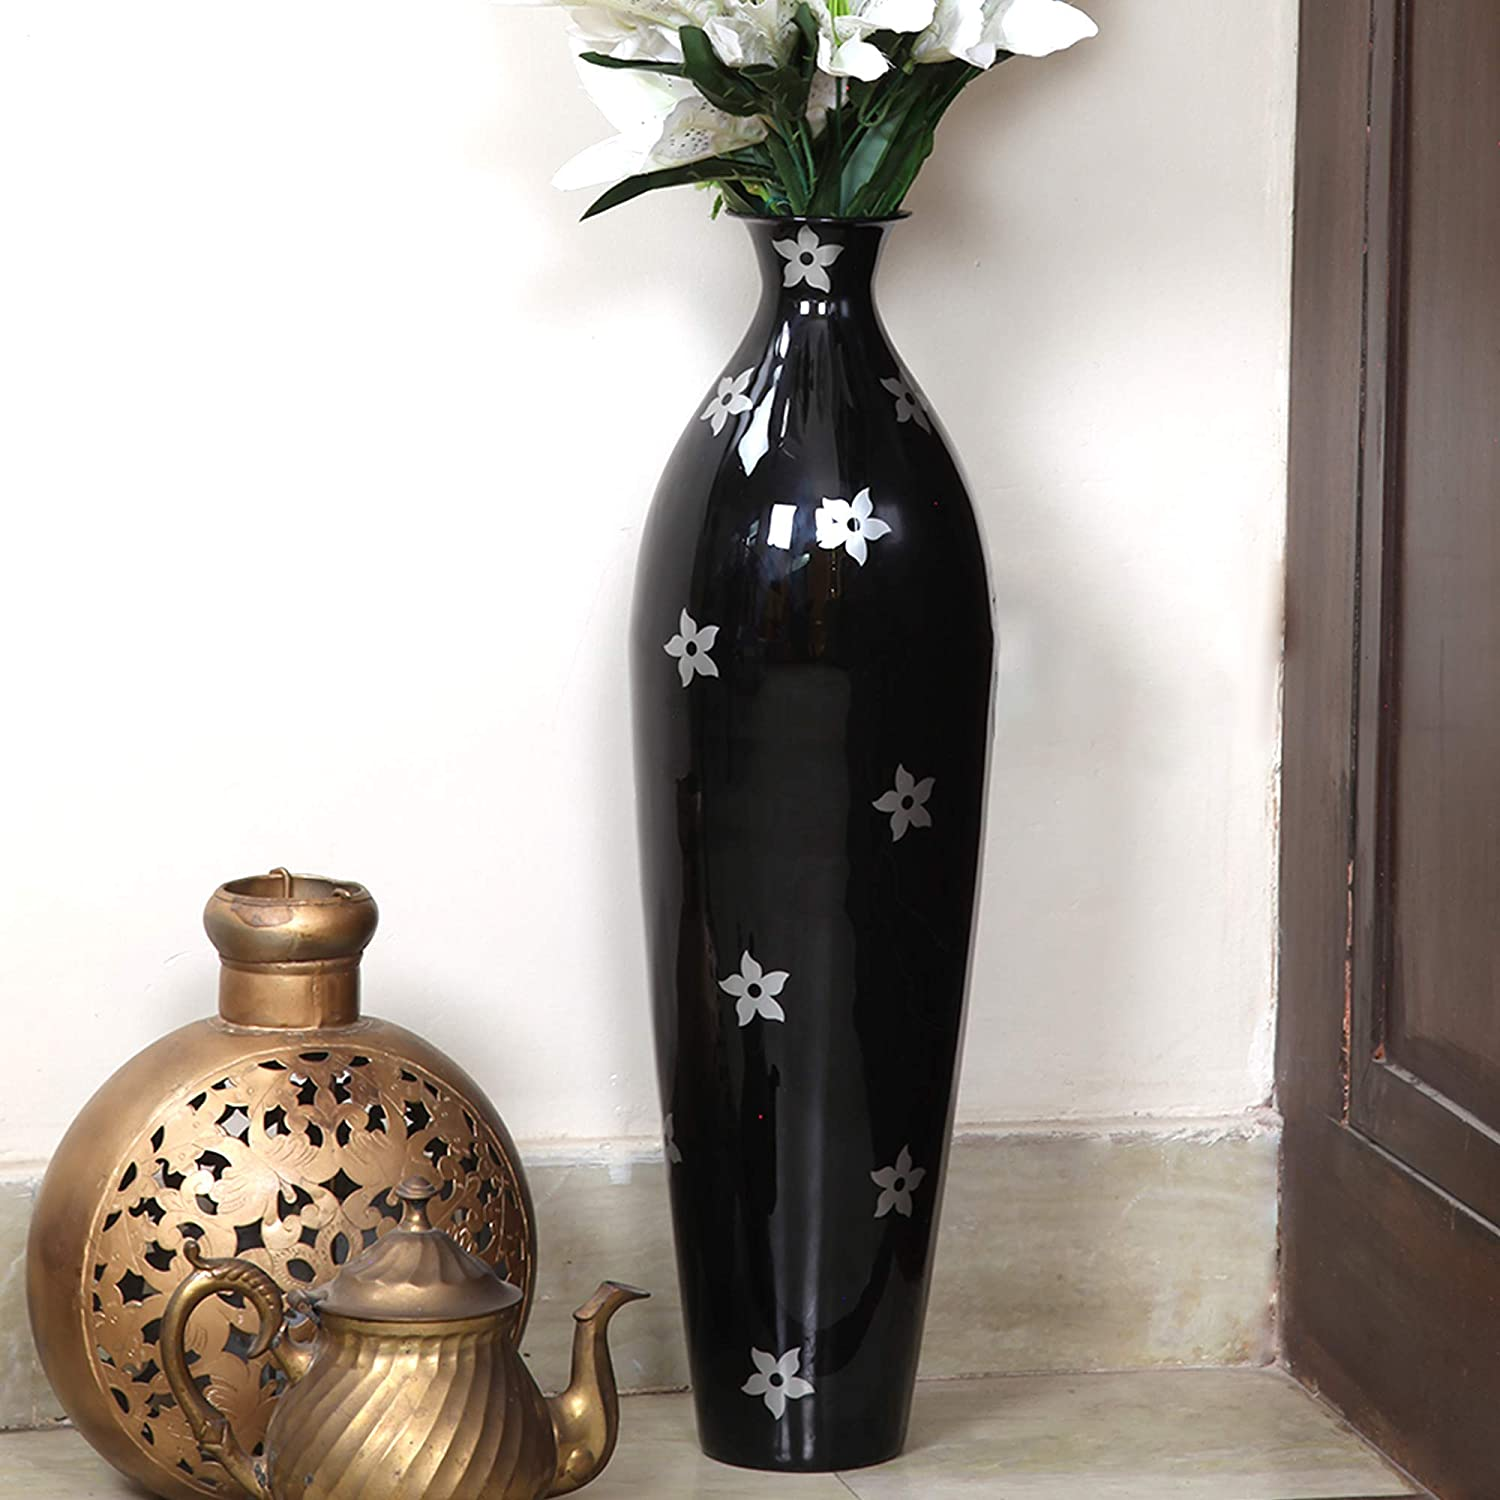 Buy Alnico Decor Metal Flower Vase 26 Inches Black Online At Low Prices In India Amazon In